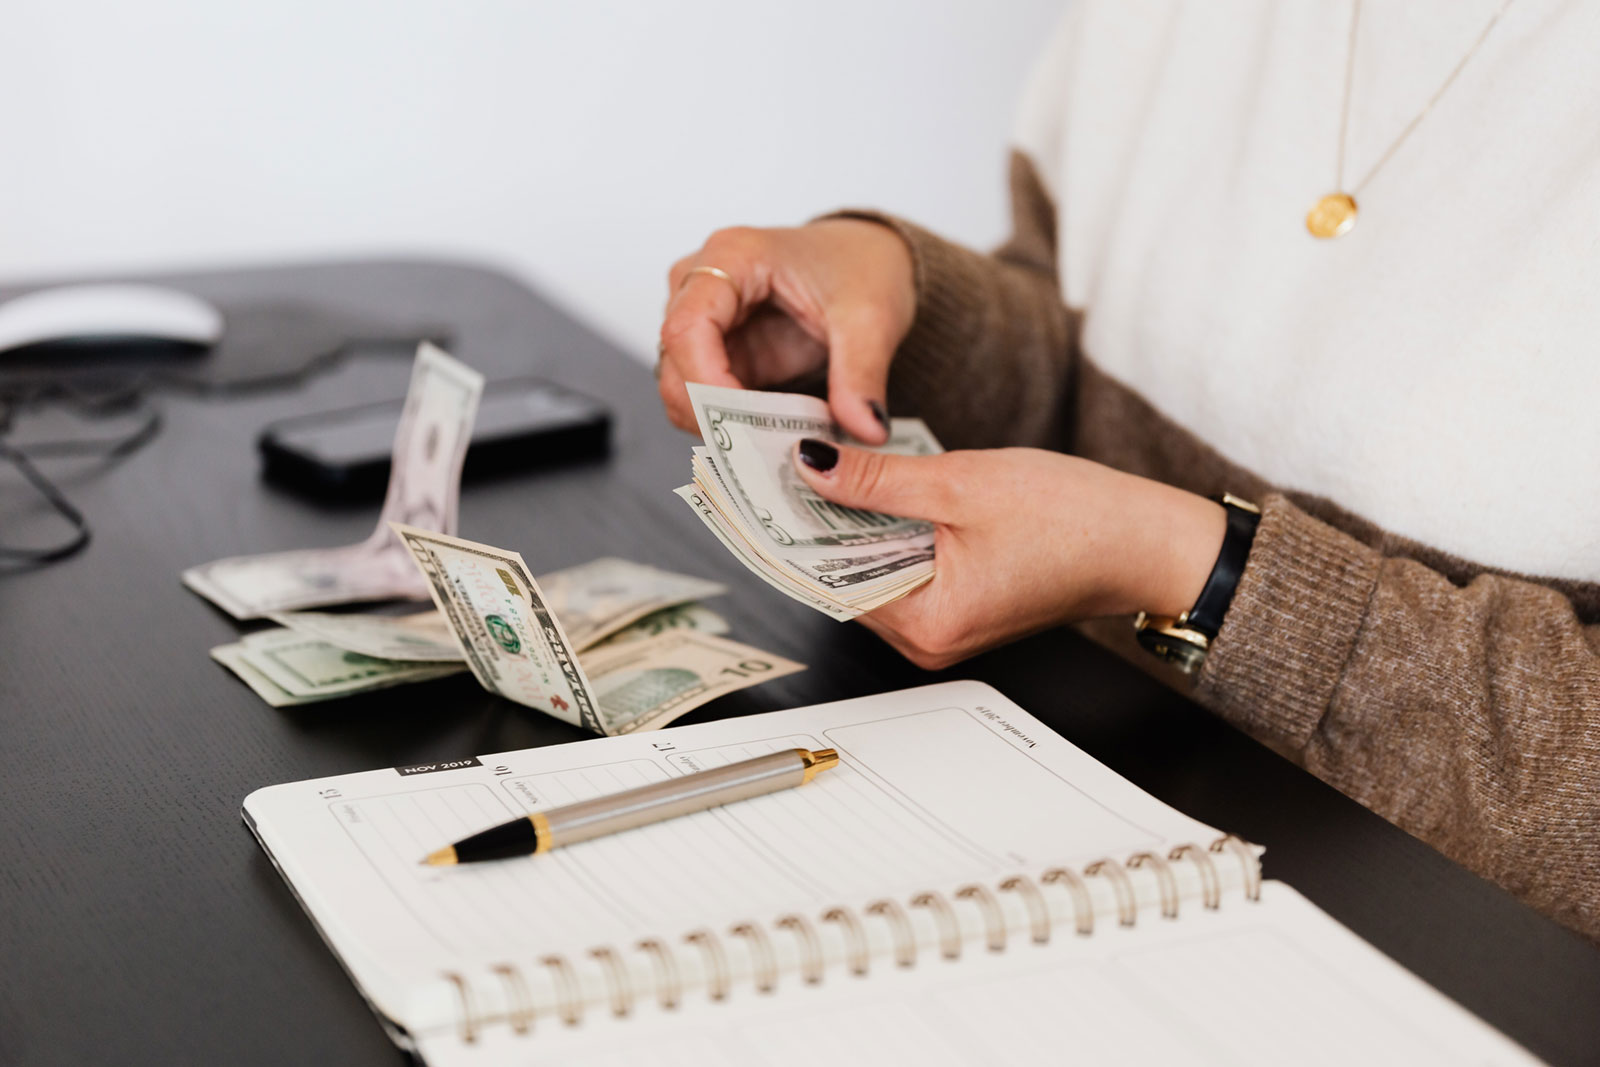 How to Find a Personal Loan with the Best Rate